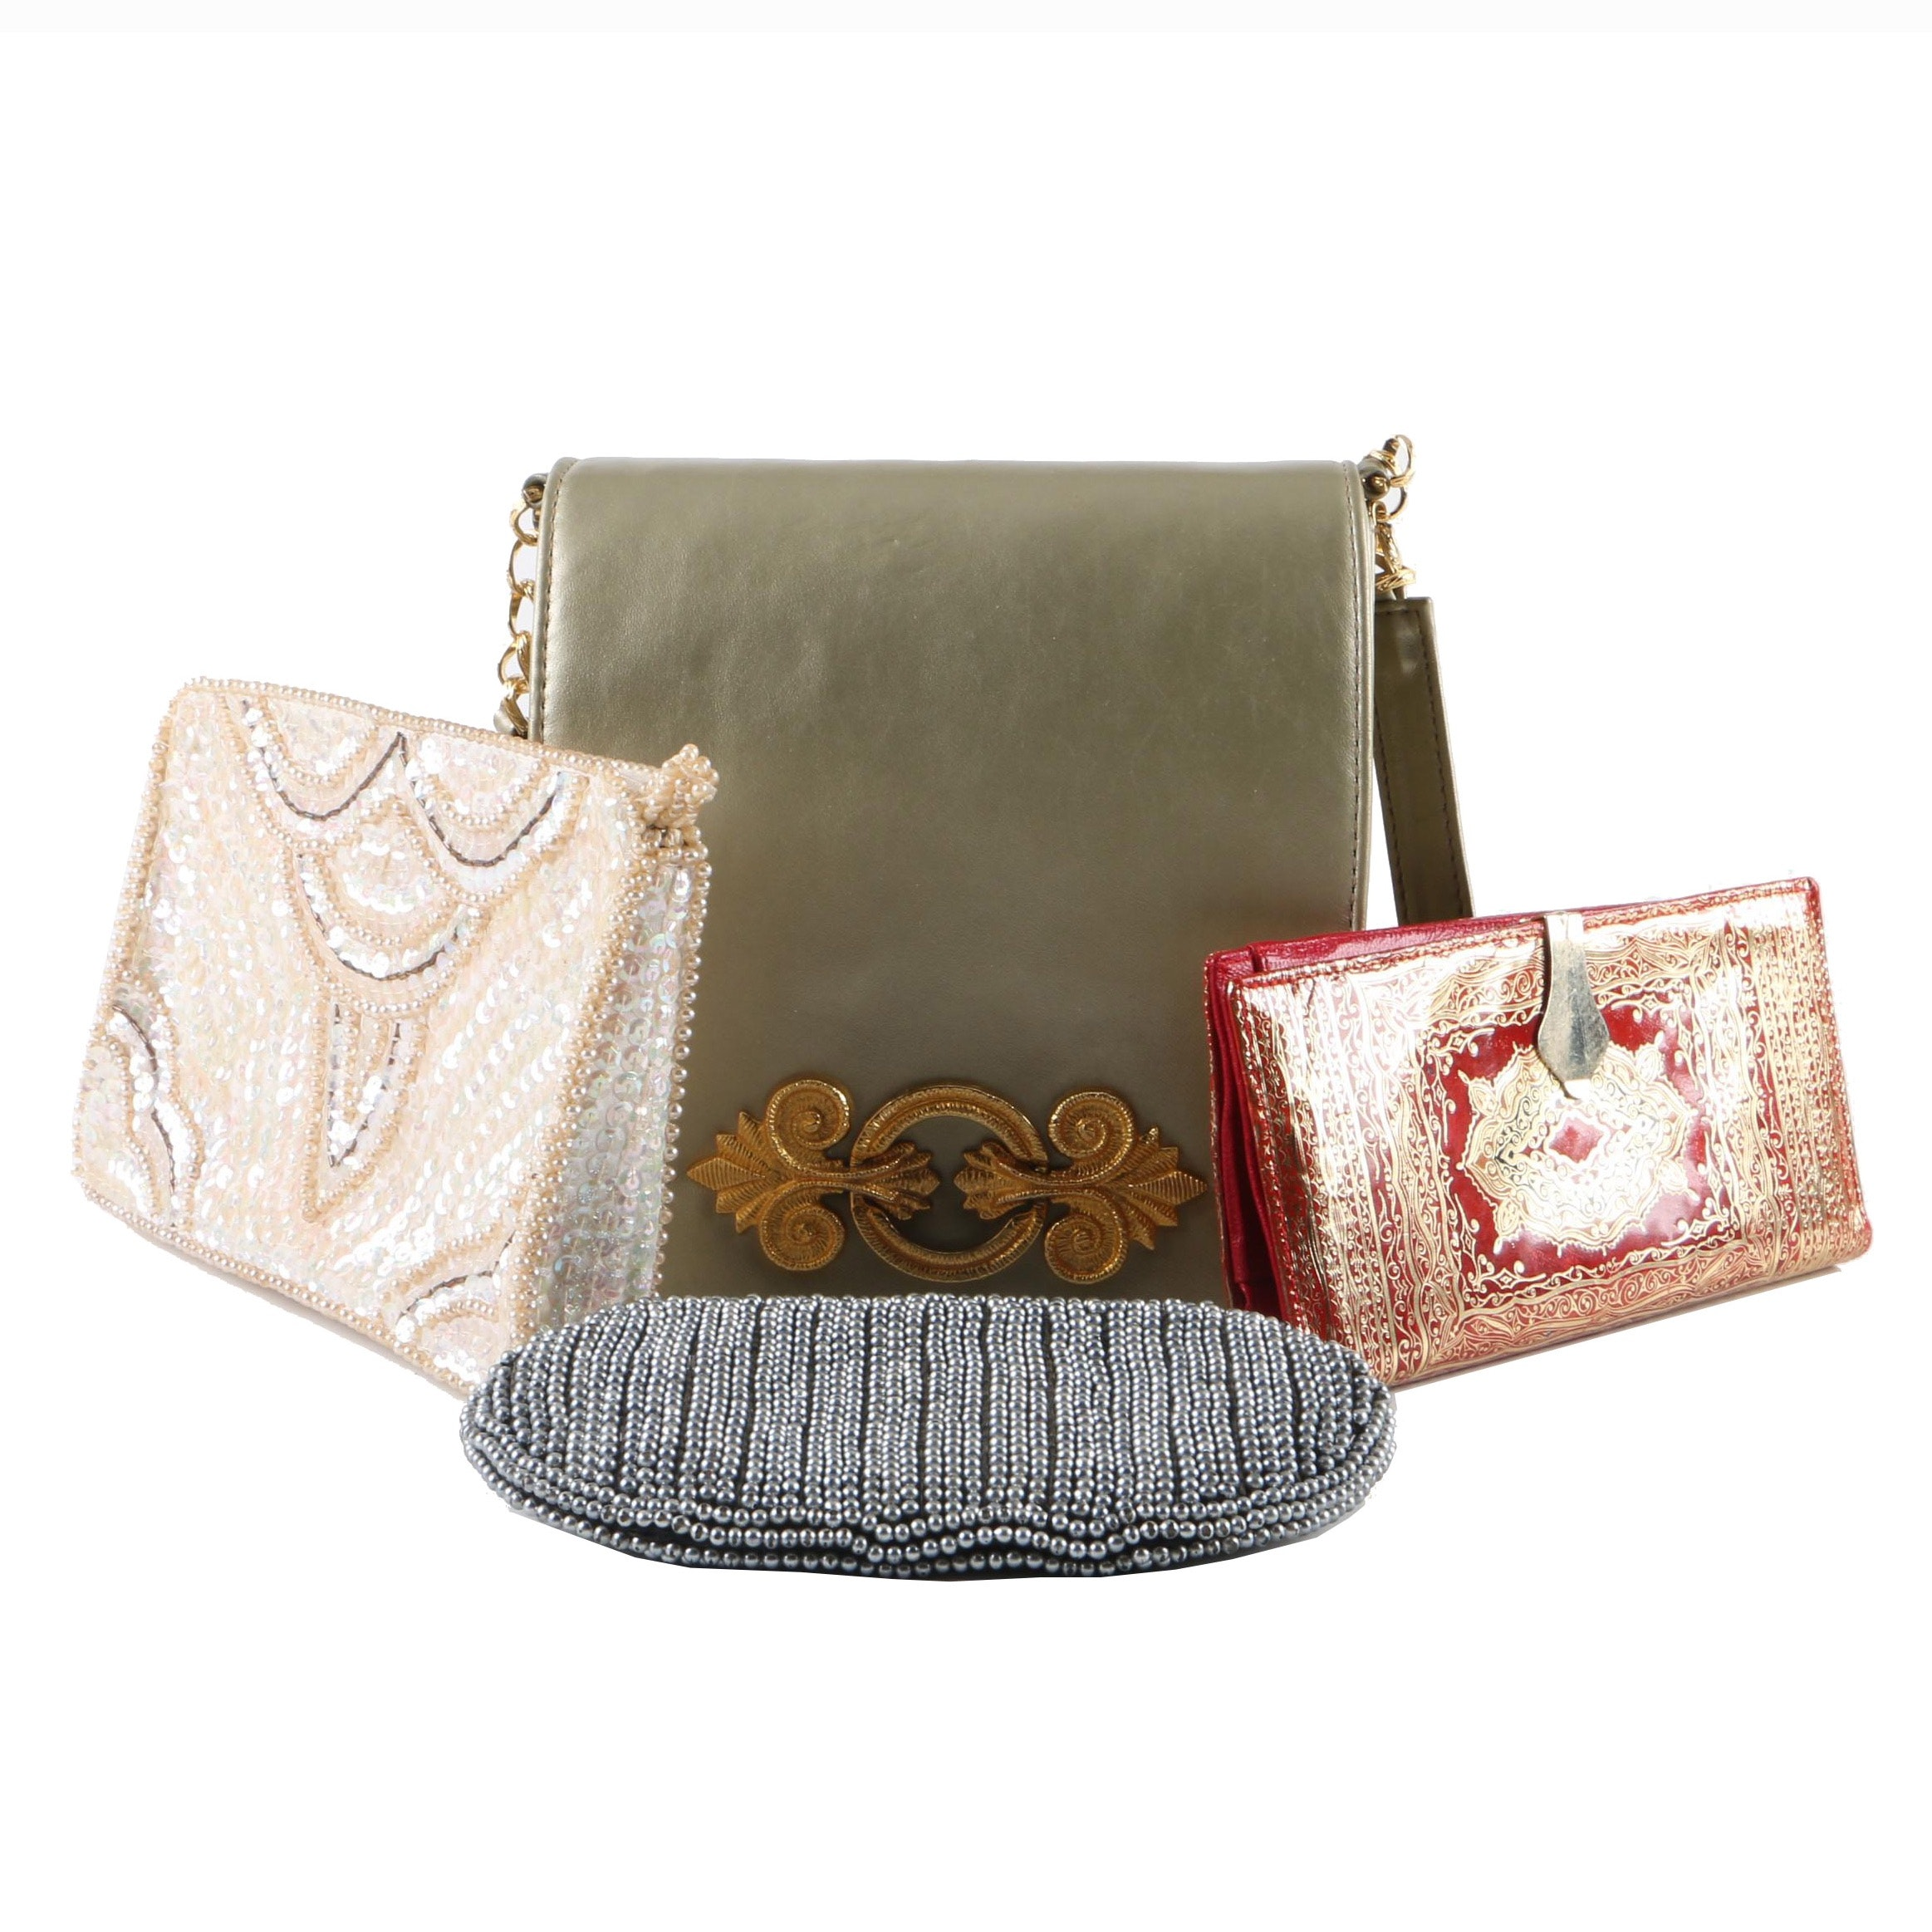 Vintage and Contemporary Handbags, Evening Bags and Clutches Including Garay